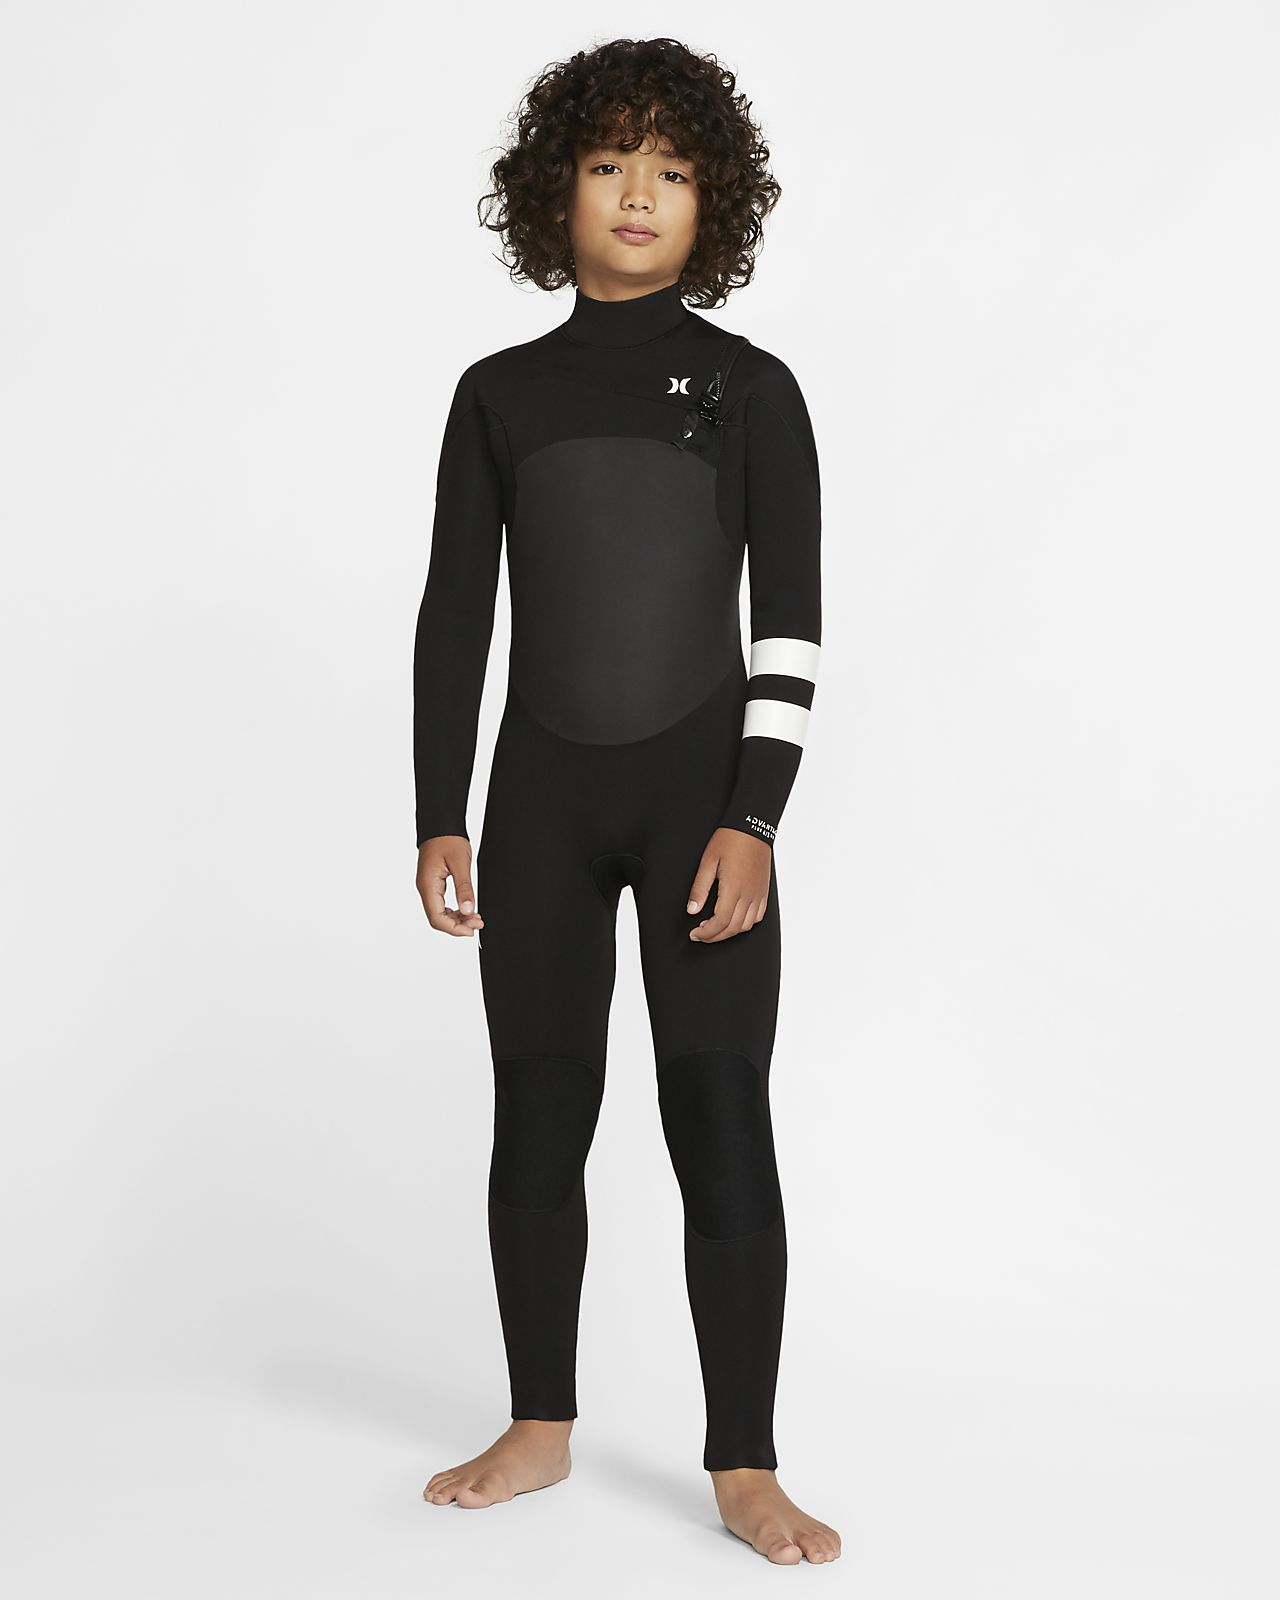 Hurley Advantage Plus 4/3mm Fullsuit Kids'' Wetsuit